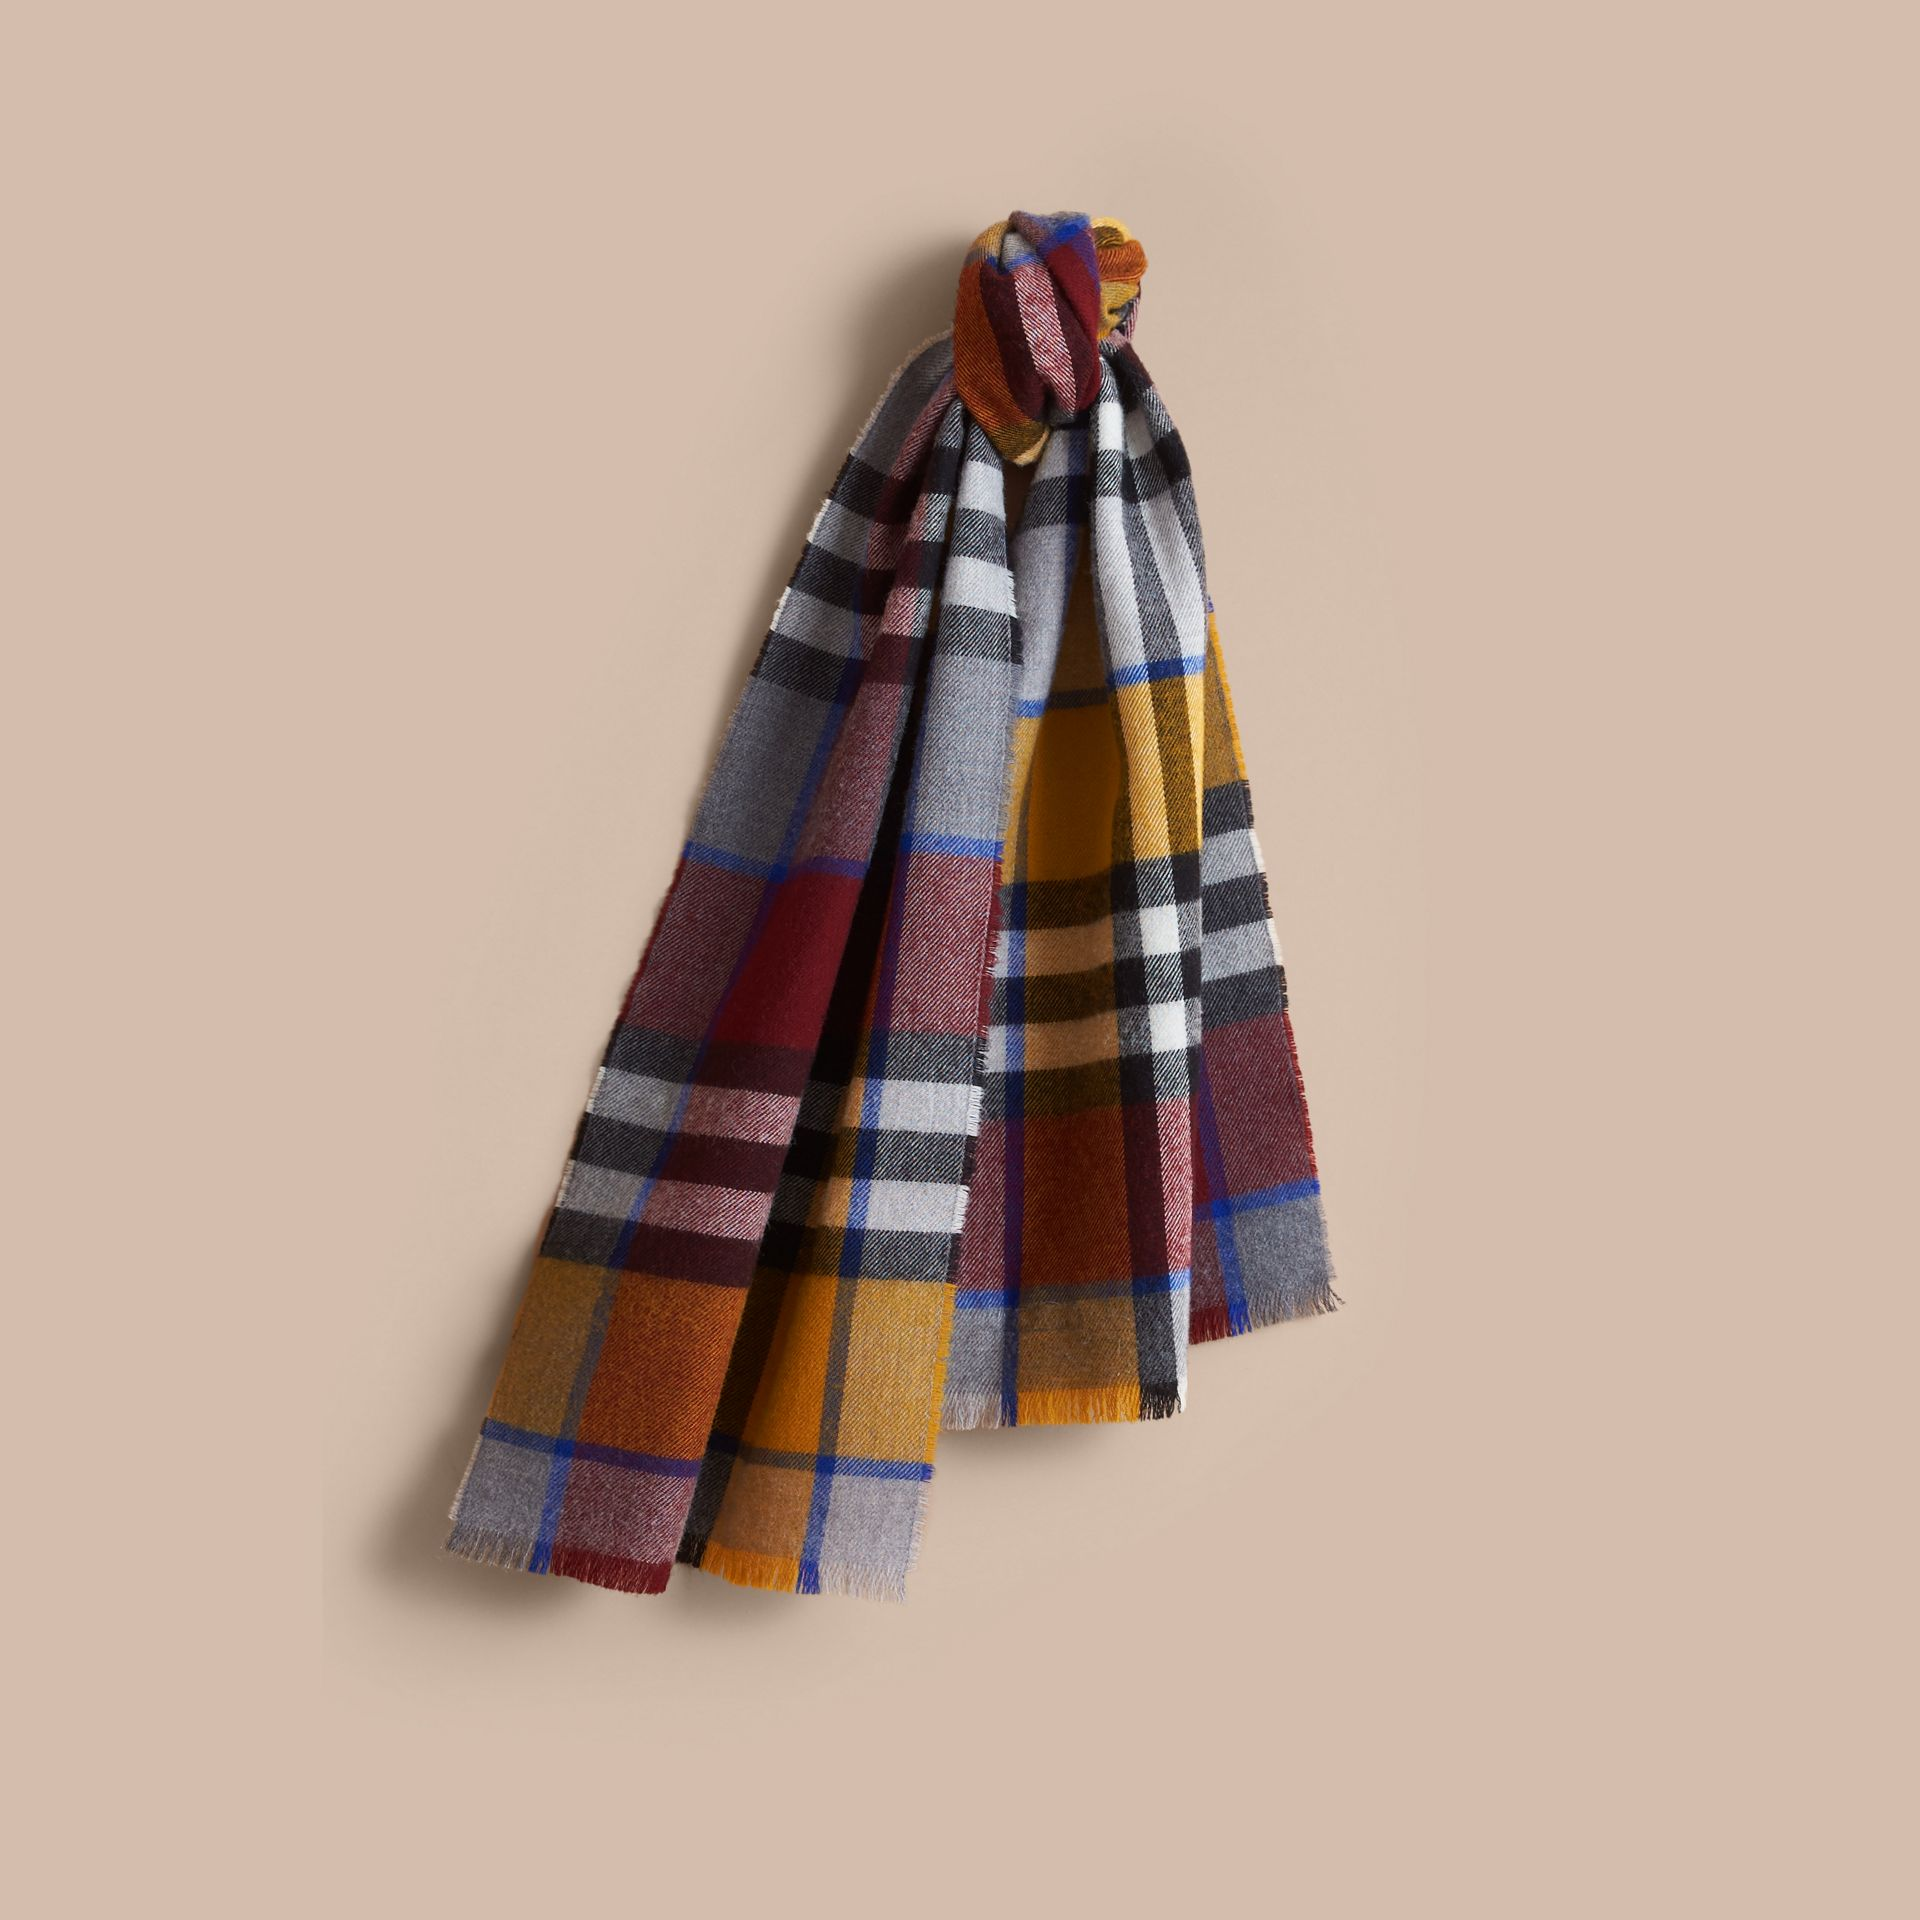 Overdyed Exploded Check Merino Wool Scarf in Burgndy/ochre Yellow | Burberry - gallery image 1